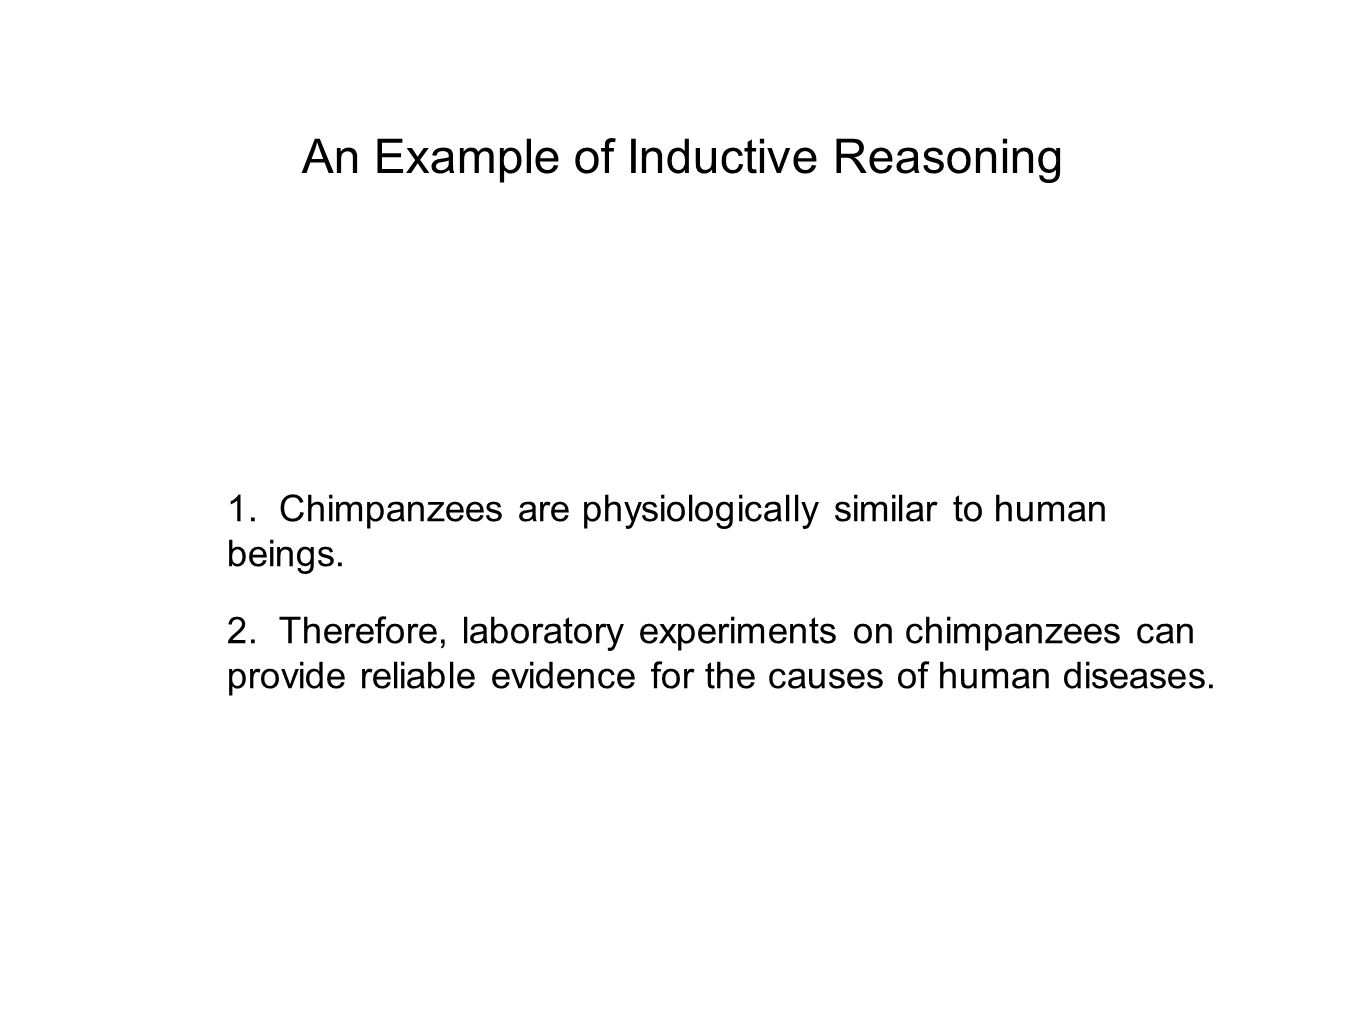 An Example of Inductive Reasoning 1. Chimpanzees are physiologically similar to human beings. 2. Therefore, laboratory experiments on chimpanzees can